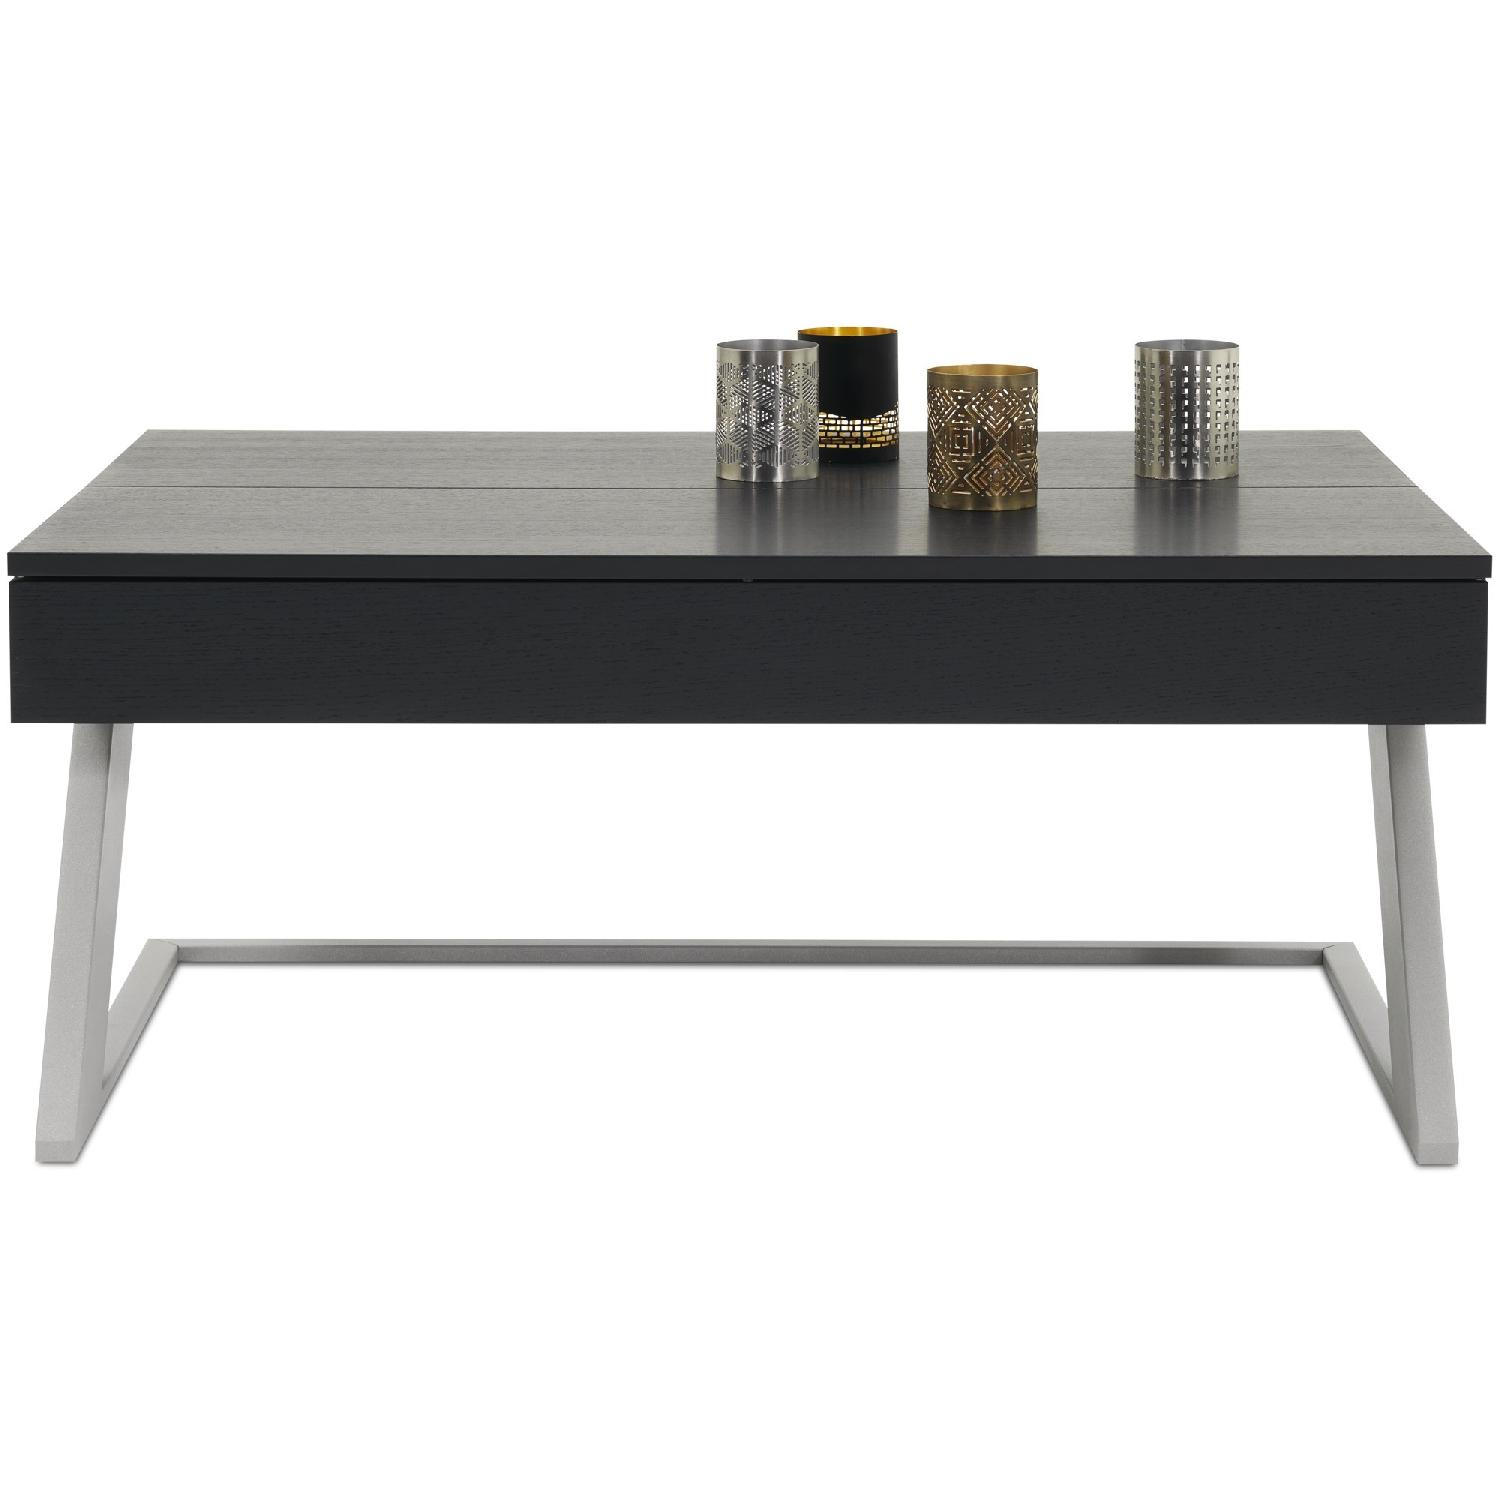 BoConcept Contemporary Lift-Top Coffee Table w/ Storage